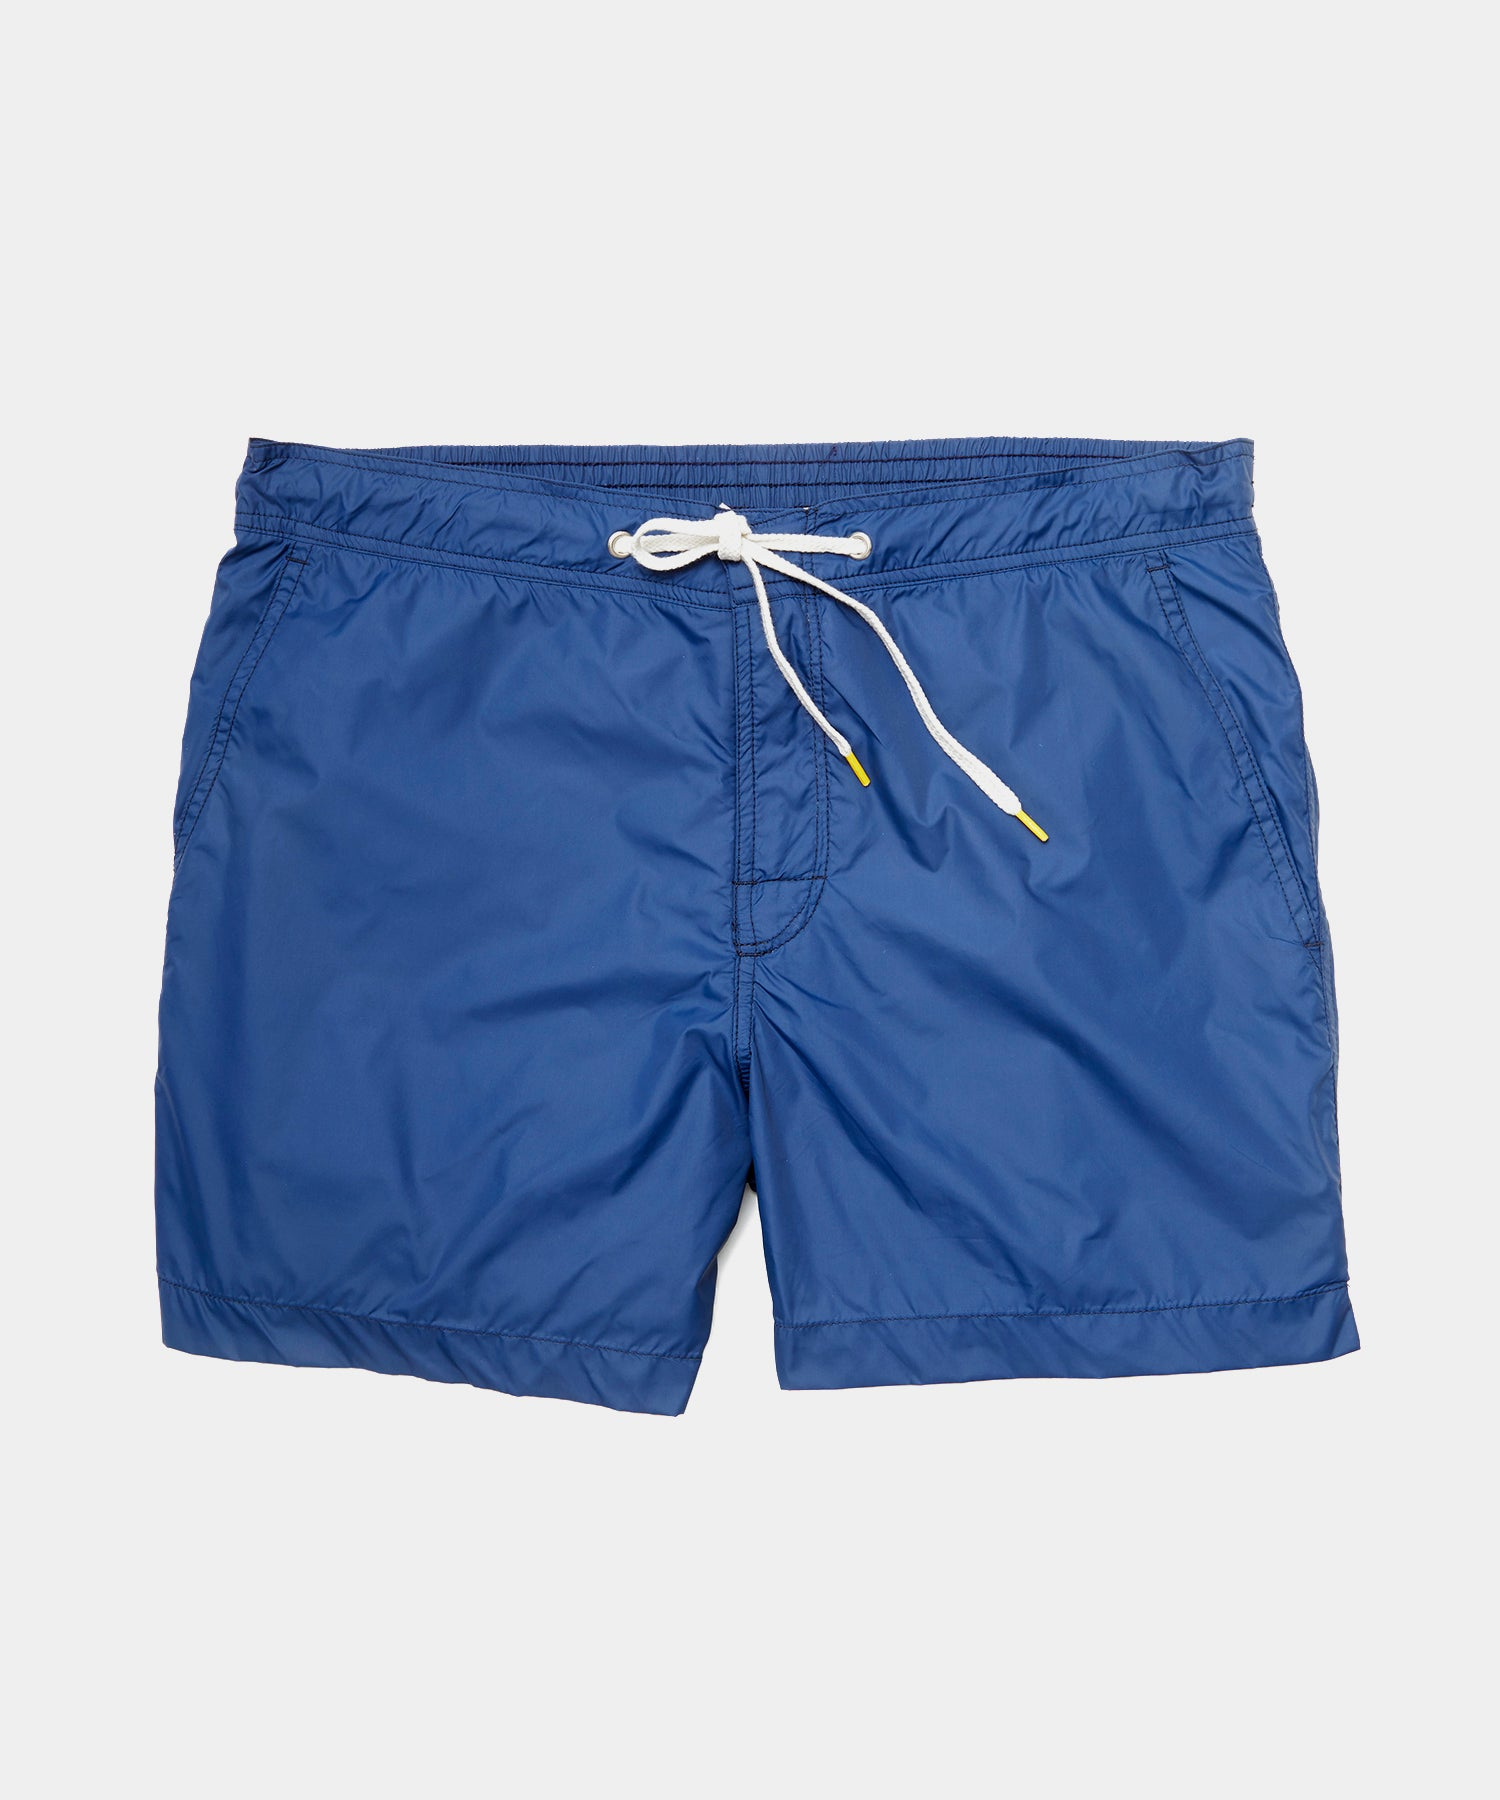 Hartford Kuta Swim Trunk in Indigo Blue